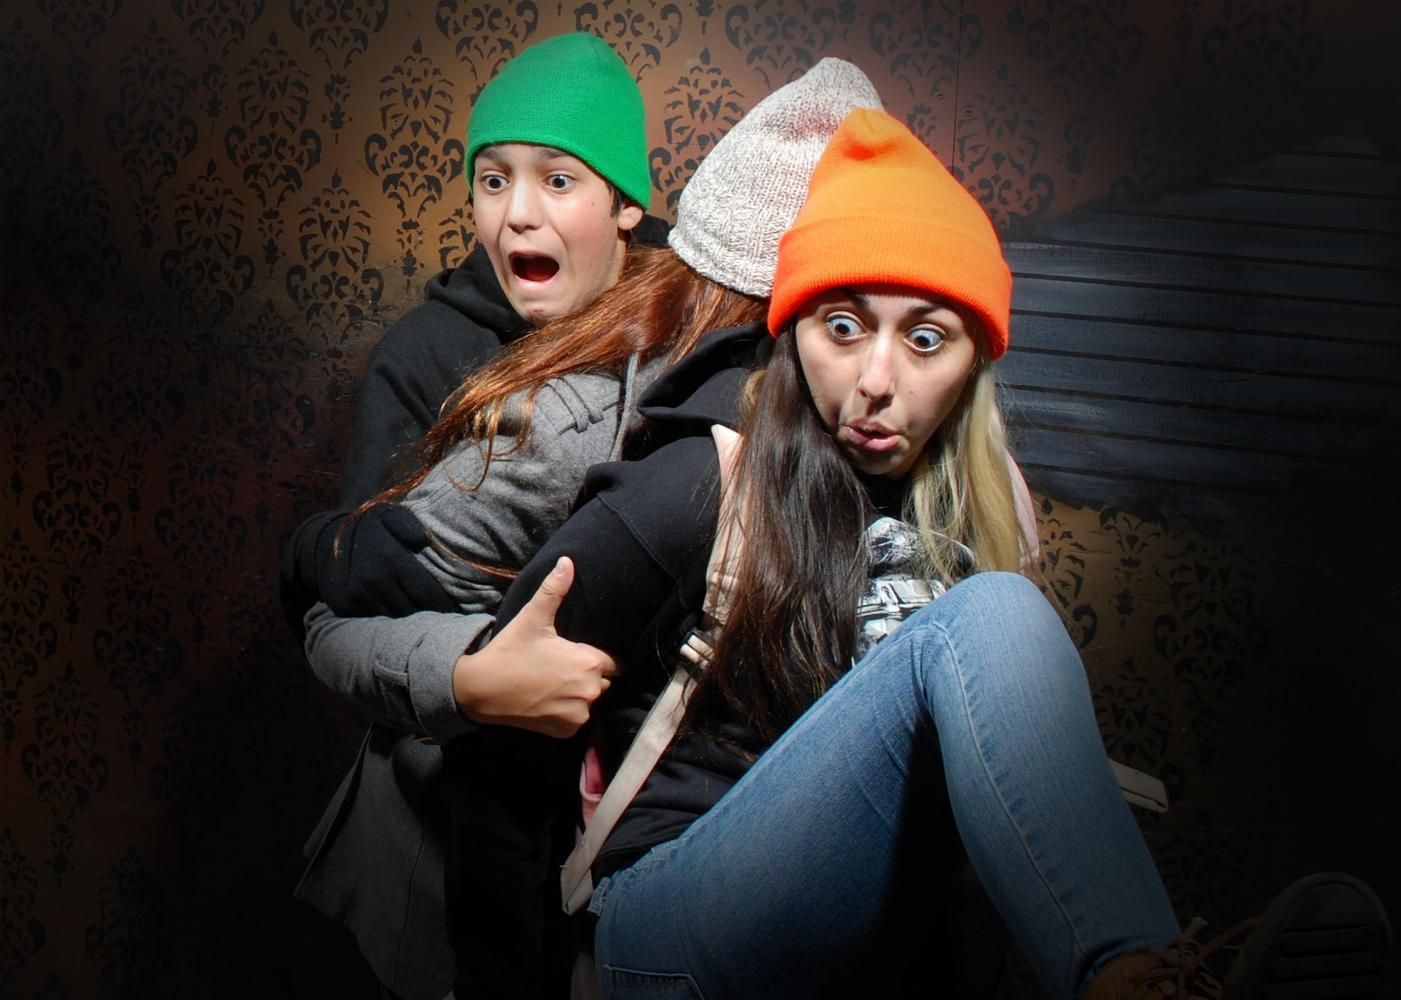 Nightmare haunted house pictures